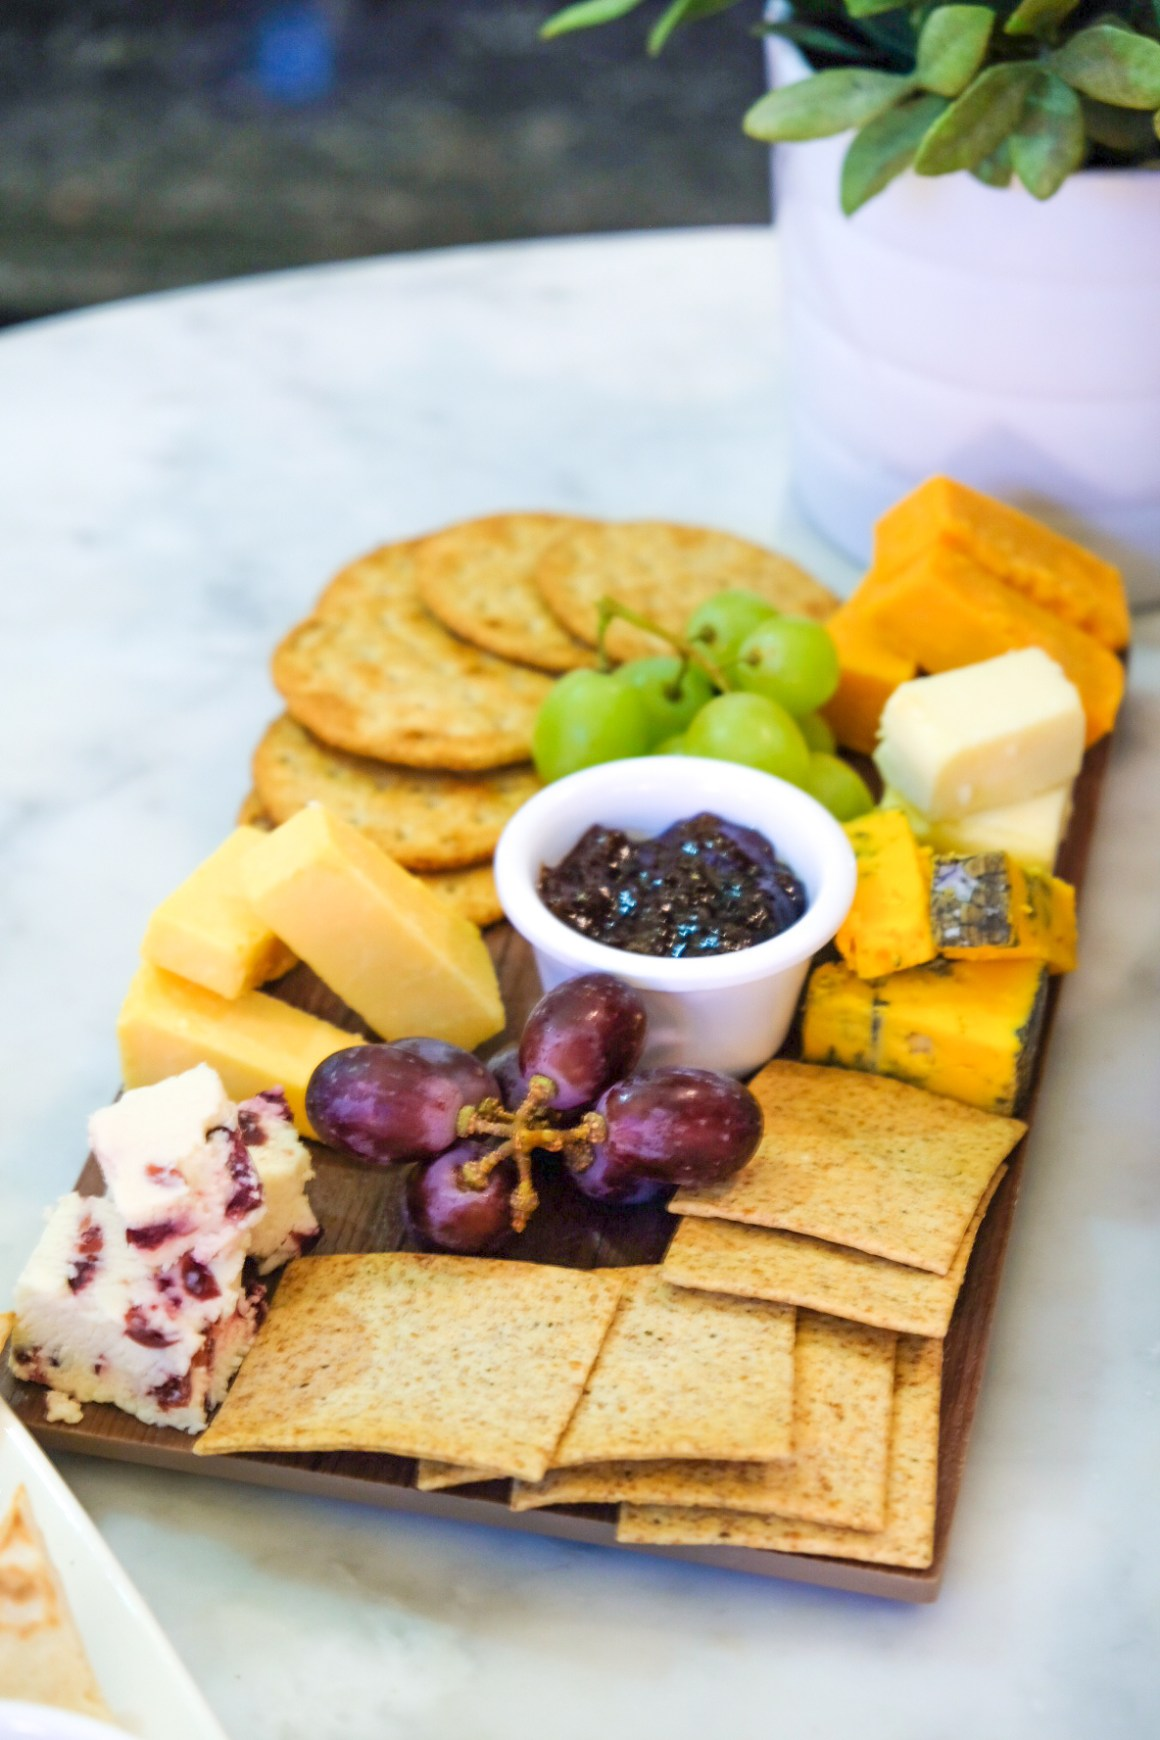 M&S Cafe New Menu Items - Cheese Board ($21)